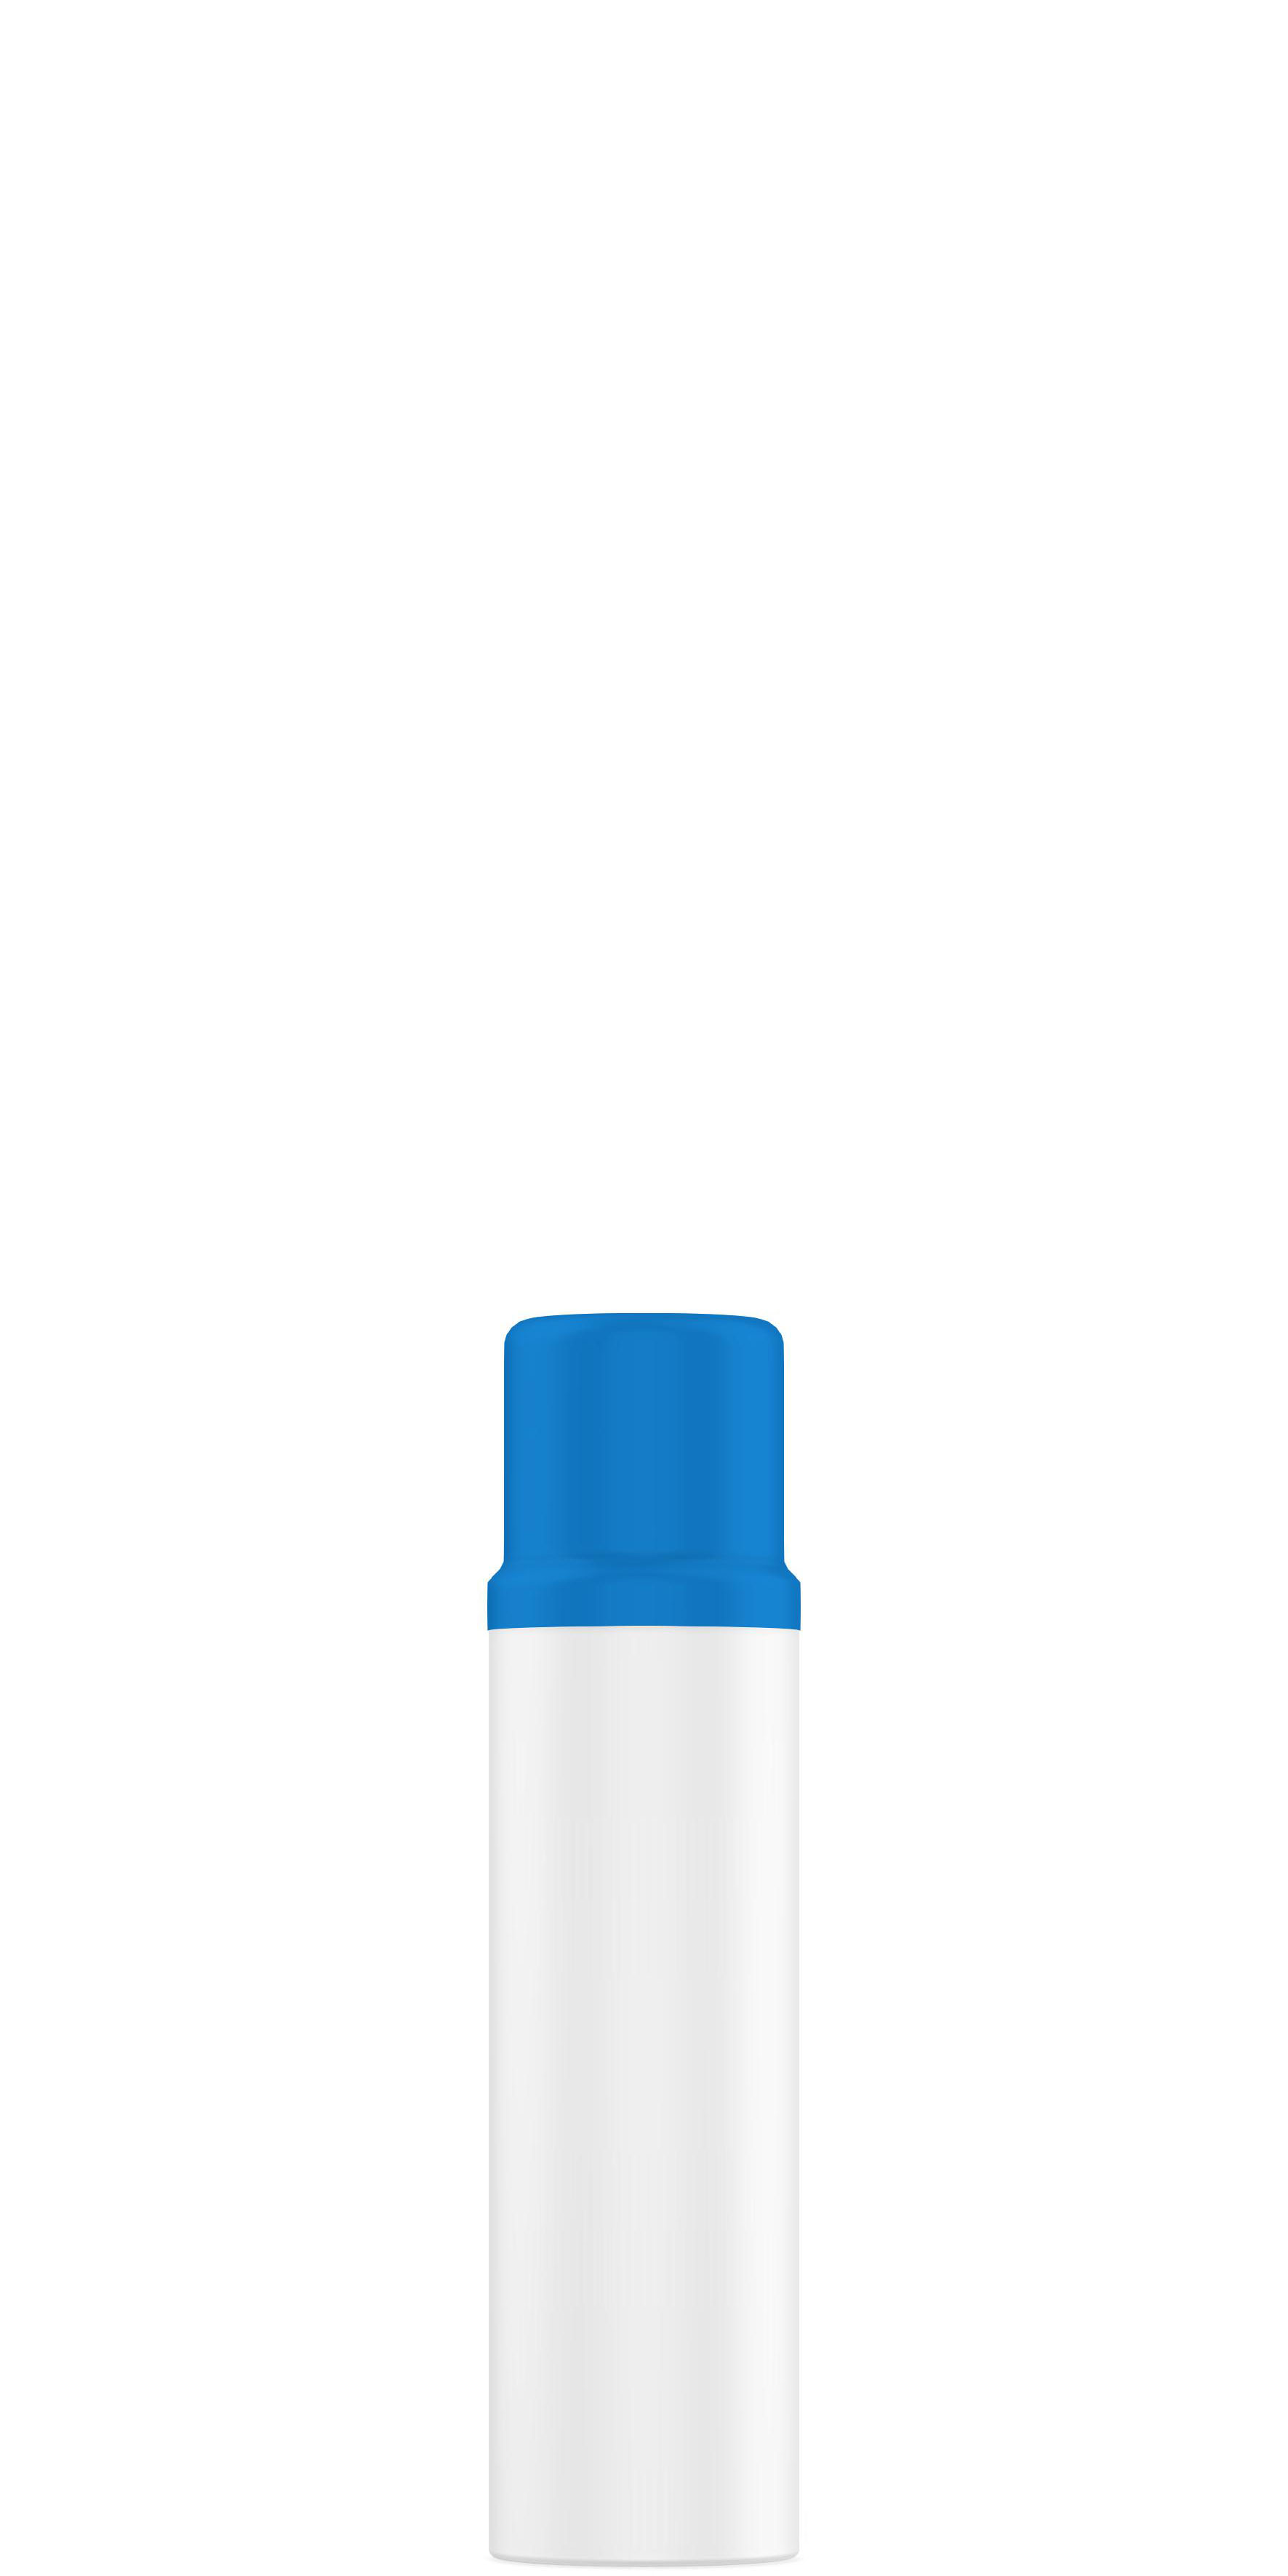 Forme emballage Soin et hydratation corps 50ml à 150ml